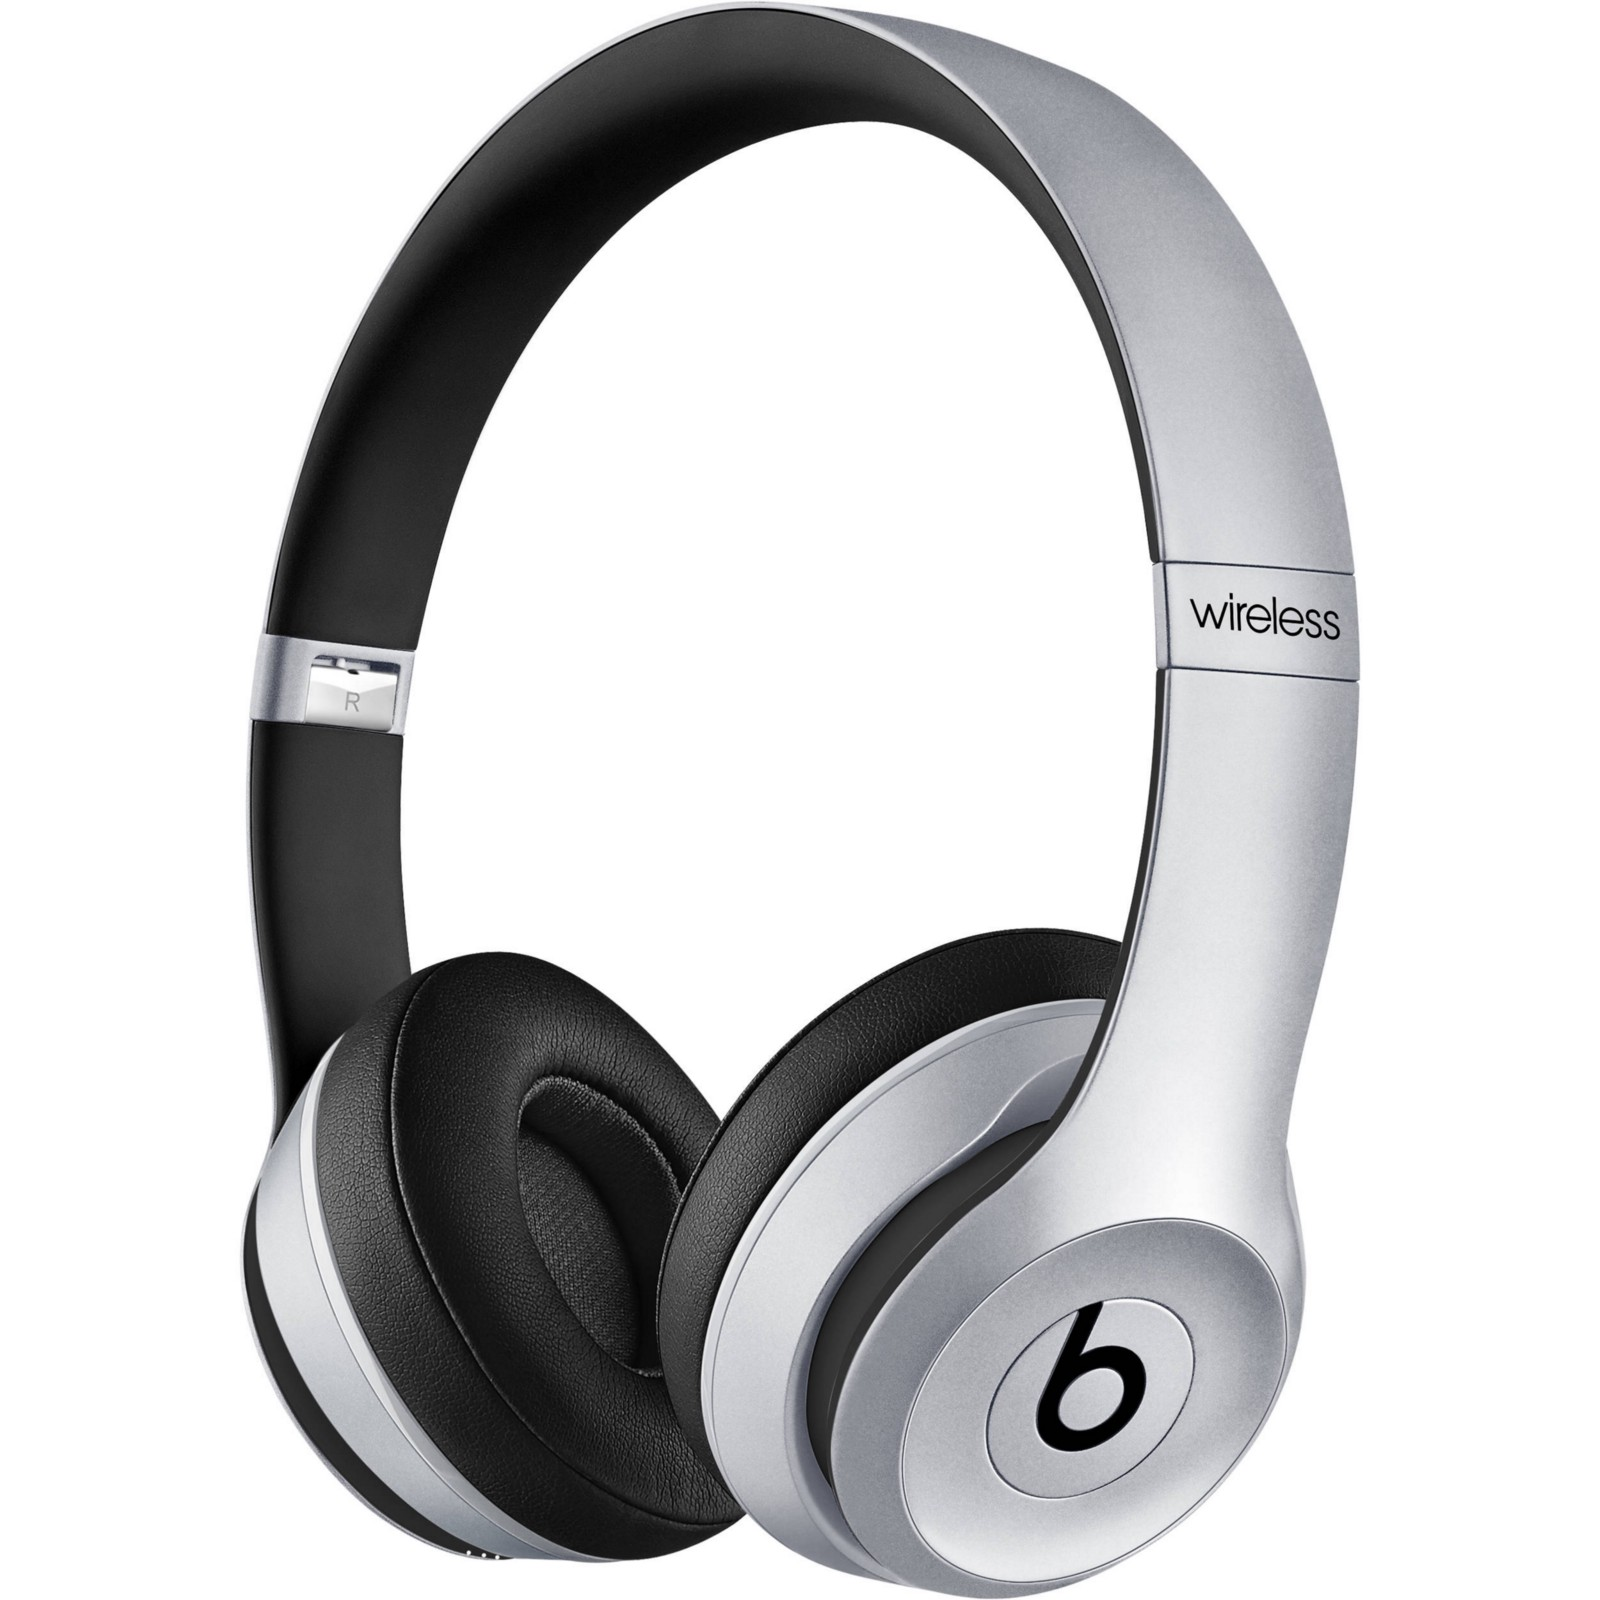 beats solo 2 wireless review don t buy them at full price